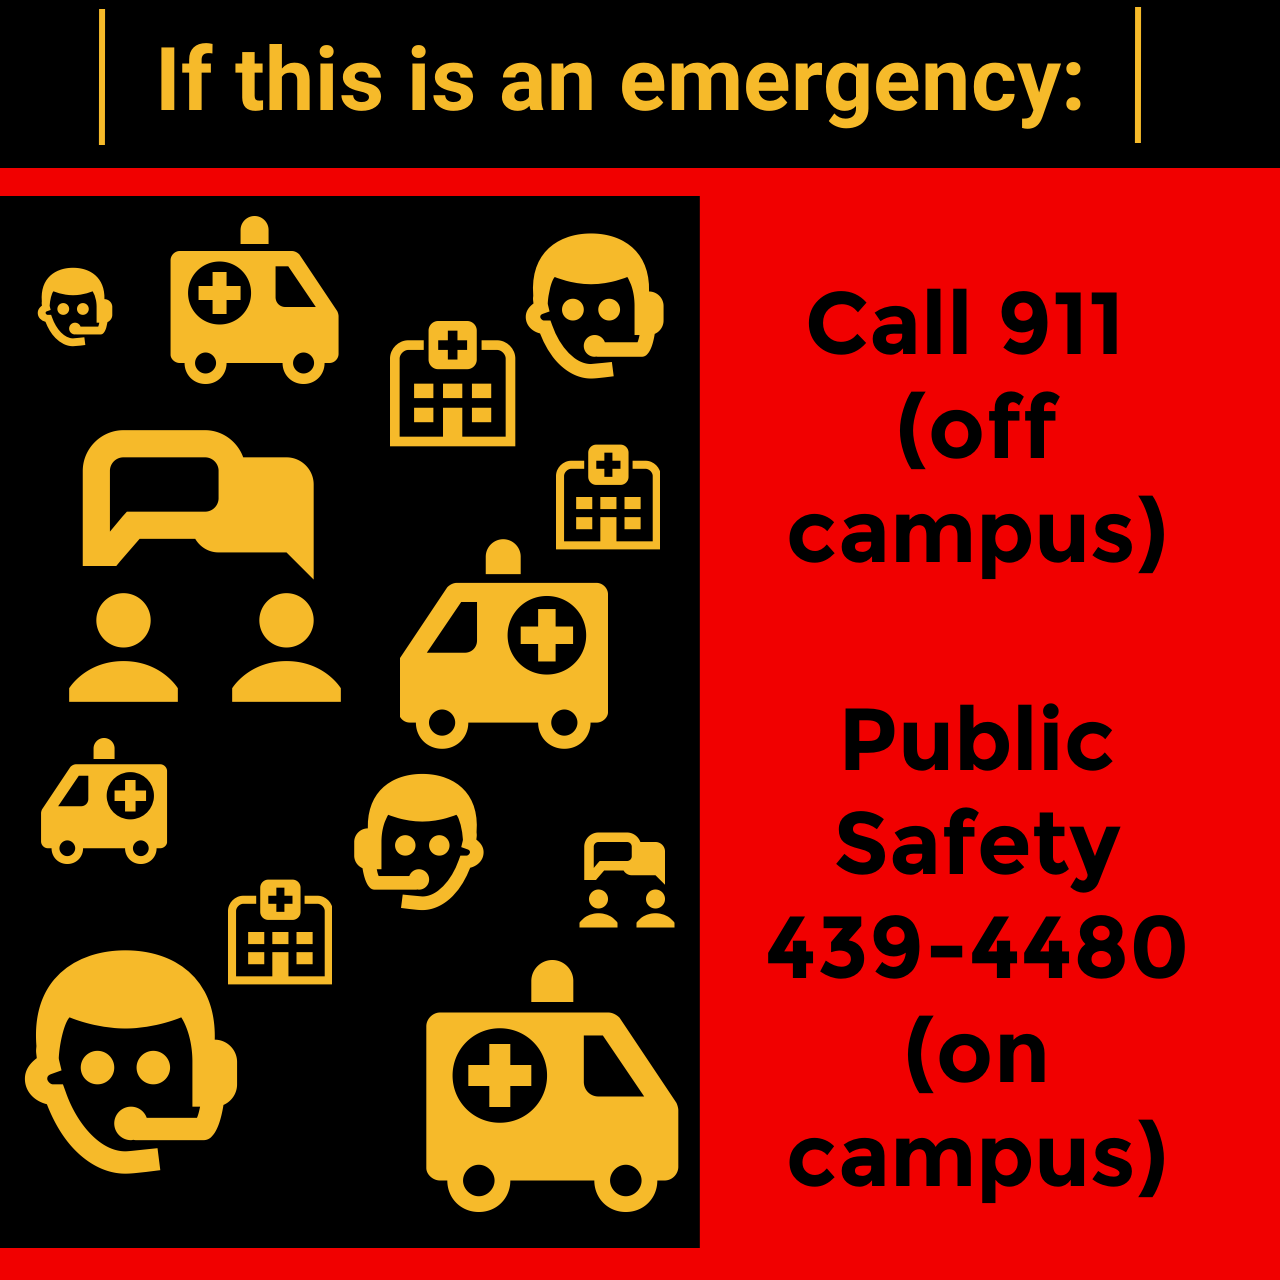 Emergency Contact Information, Pulbic safety and 911.